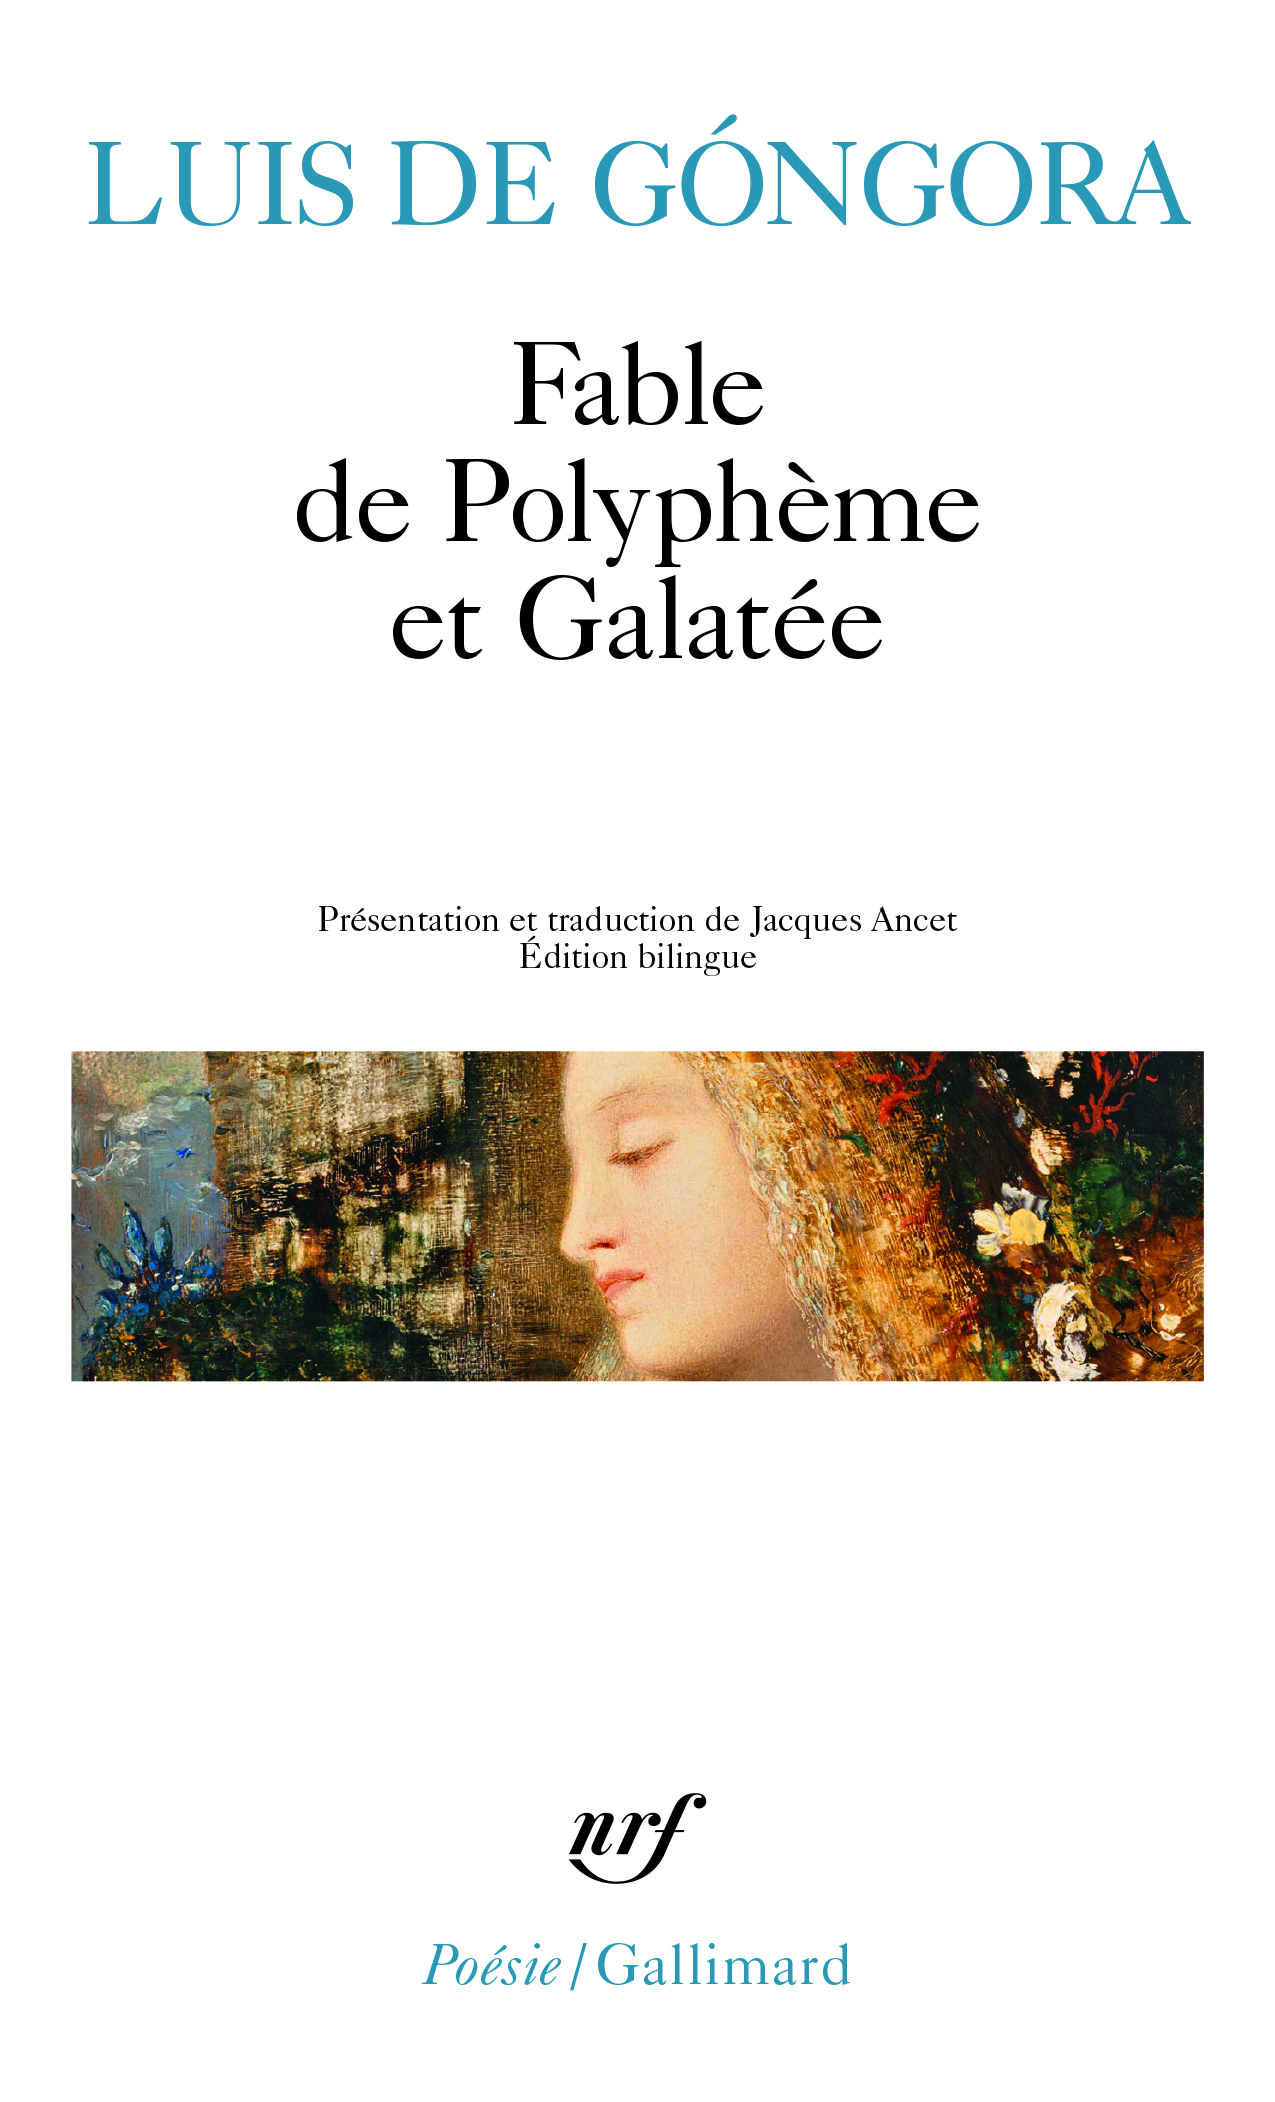 FABLE DE POLYPHEME ET GALATEE